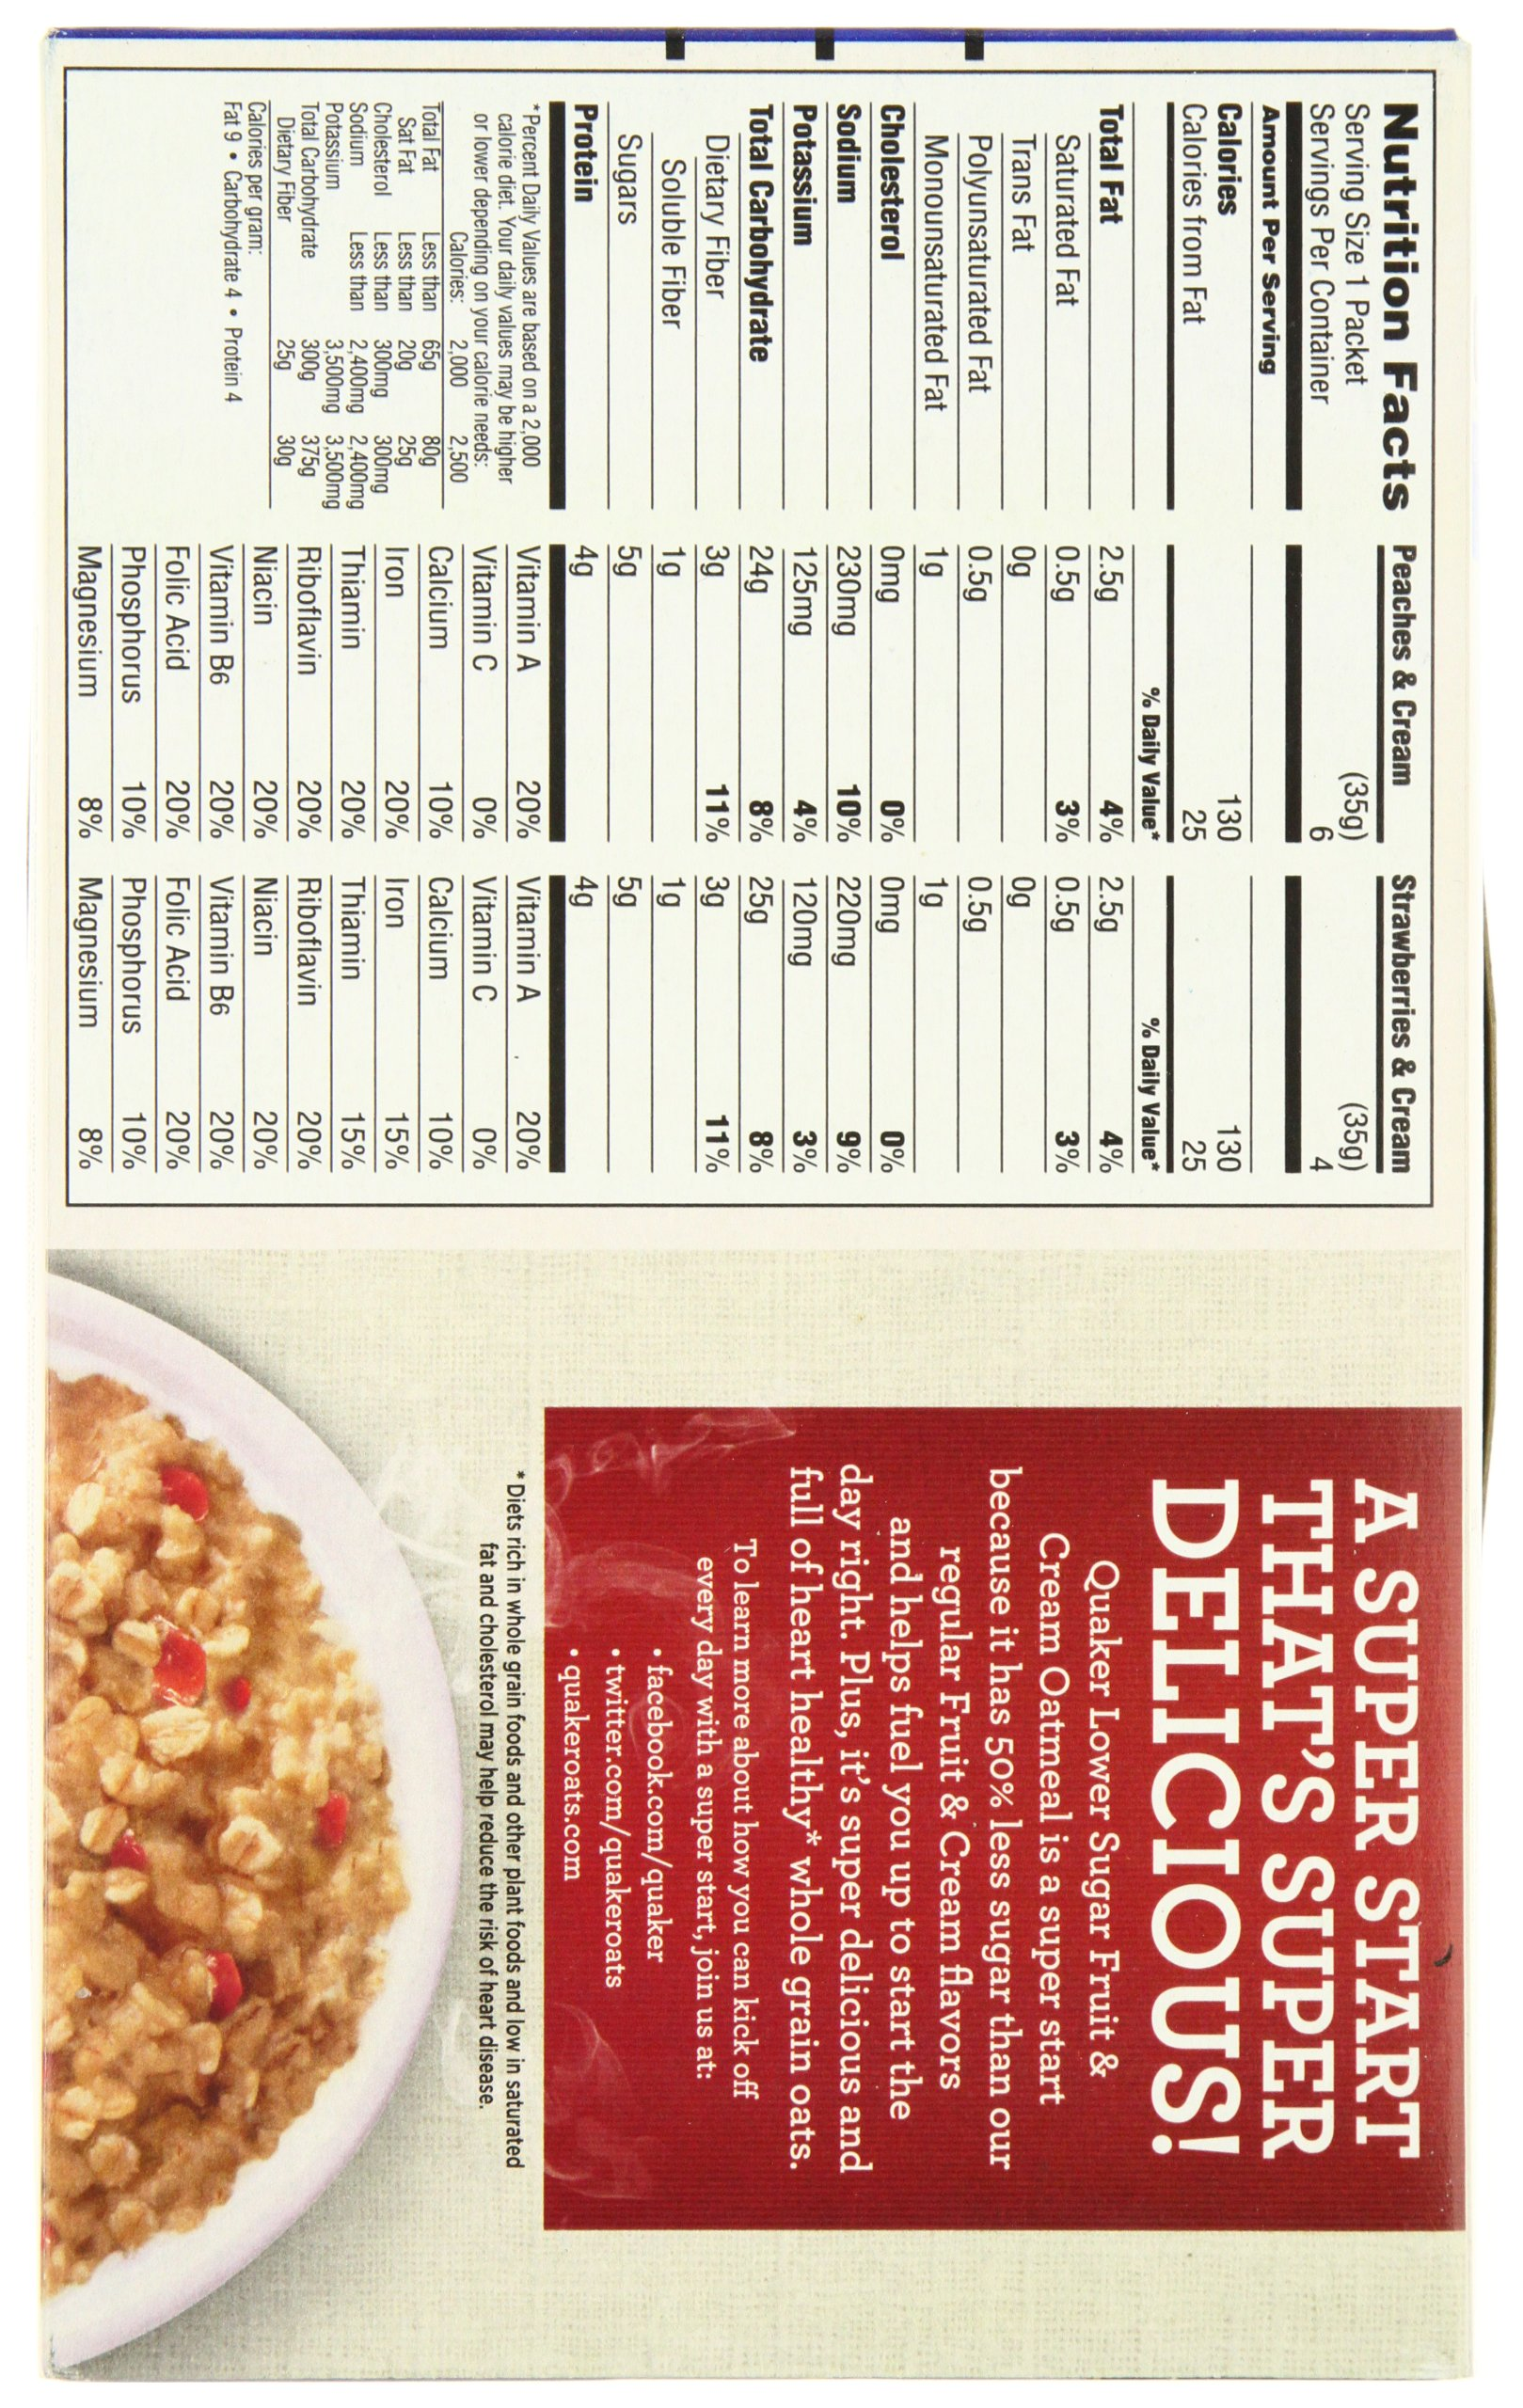 Quaker Instant Oatmeal, Low Sugar Fruit & Cream Variety Pack, Breakfast Cereal, 10 Packets Per Box (Pack of 4) by Quaker (Image #5)